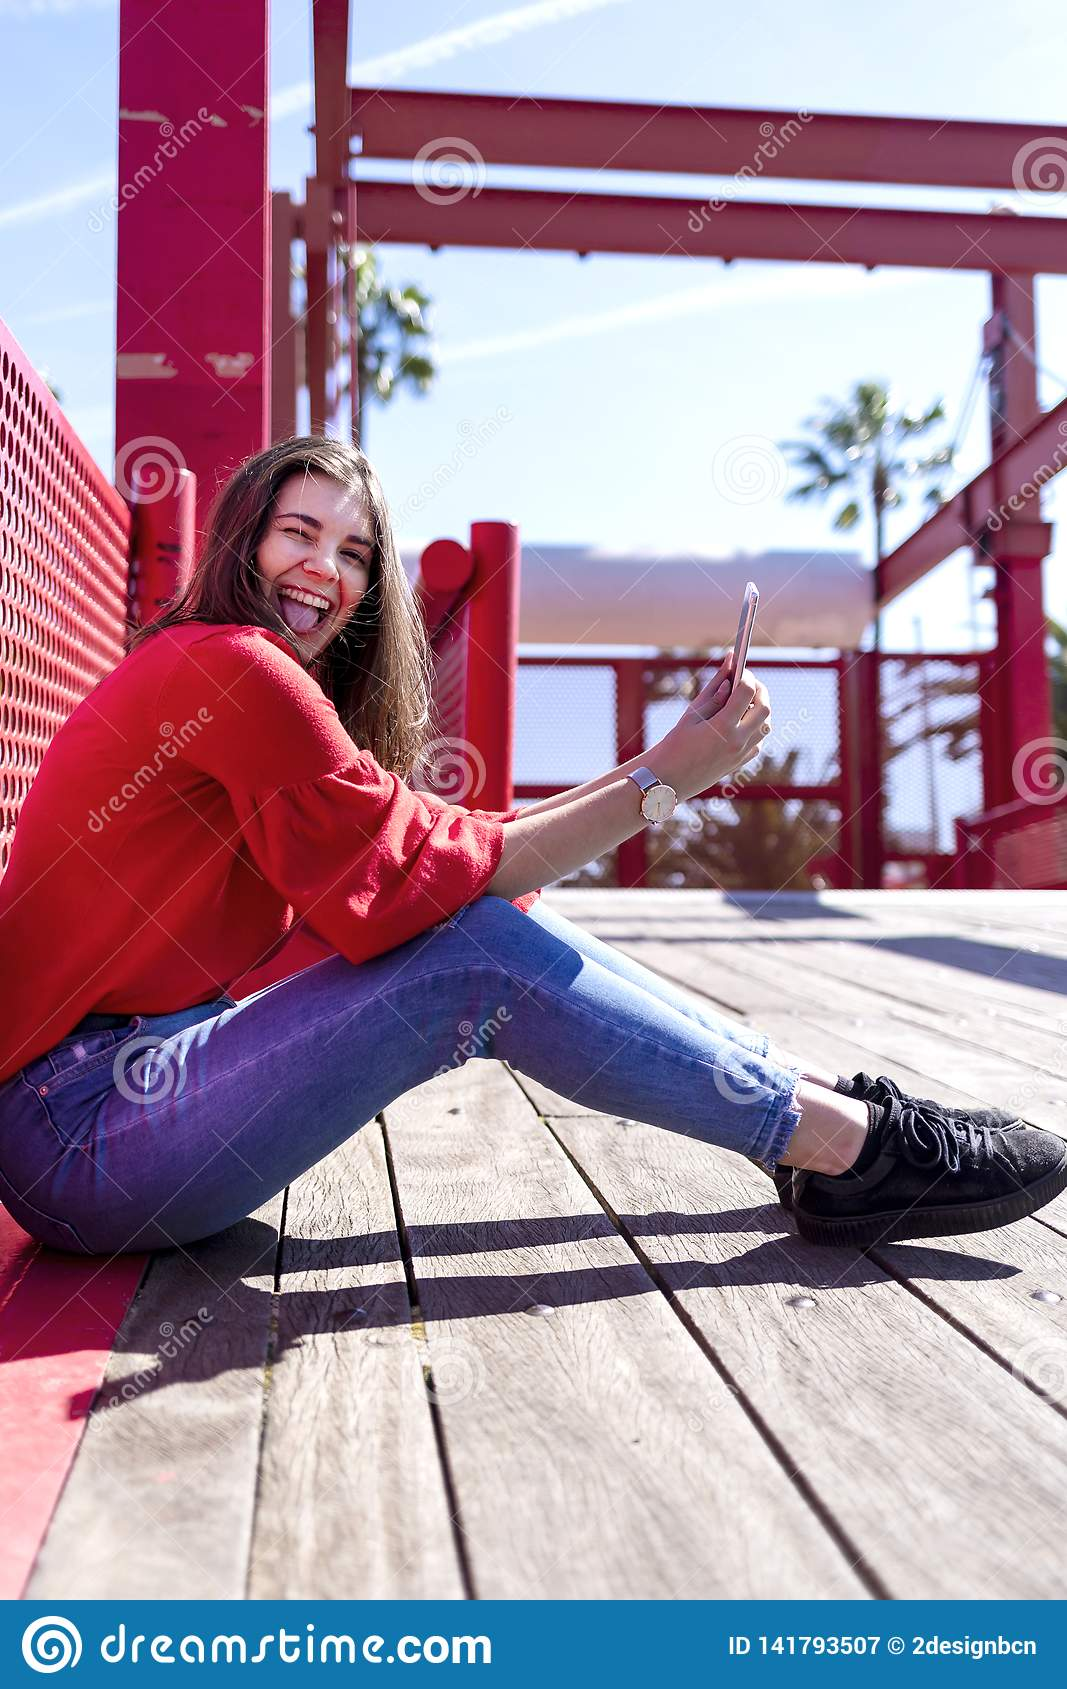 Side view of happy beautiful young woman wearing urban clothes sitting on ground and looking camera while using a mobile phone